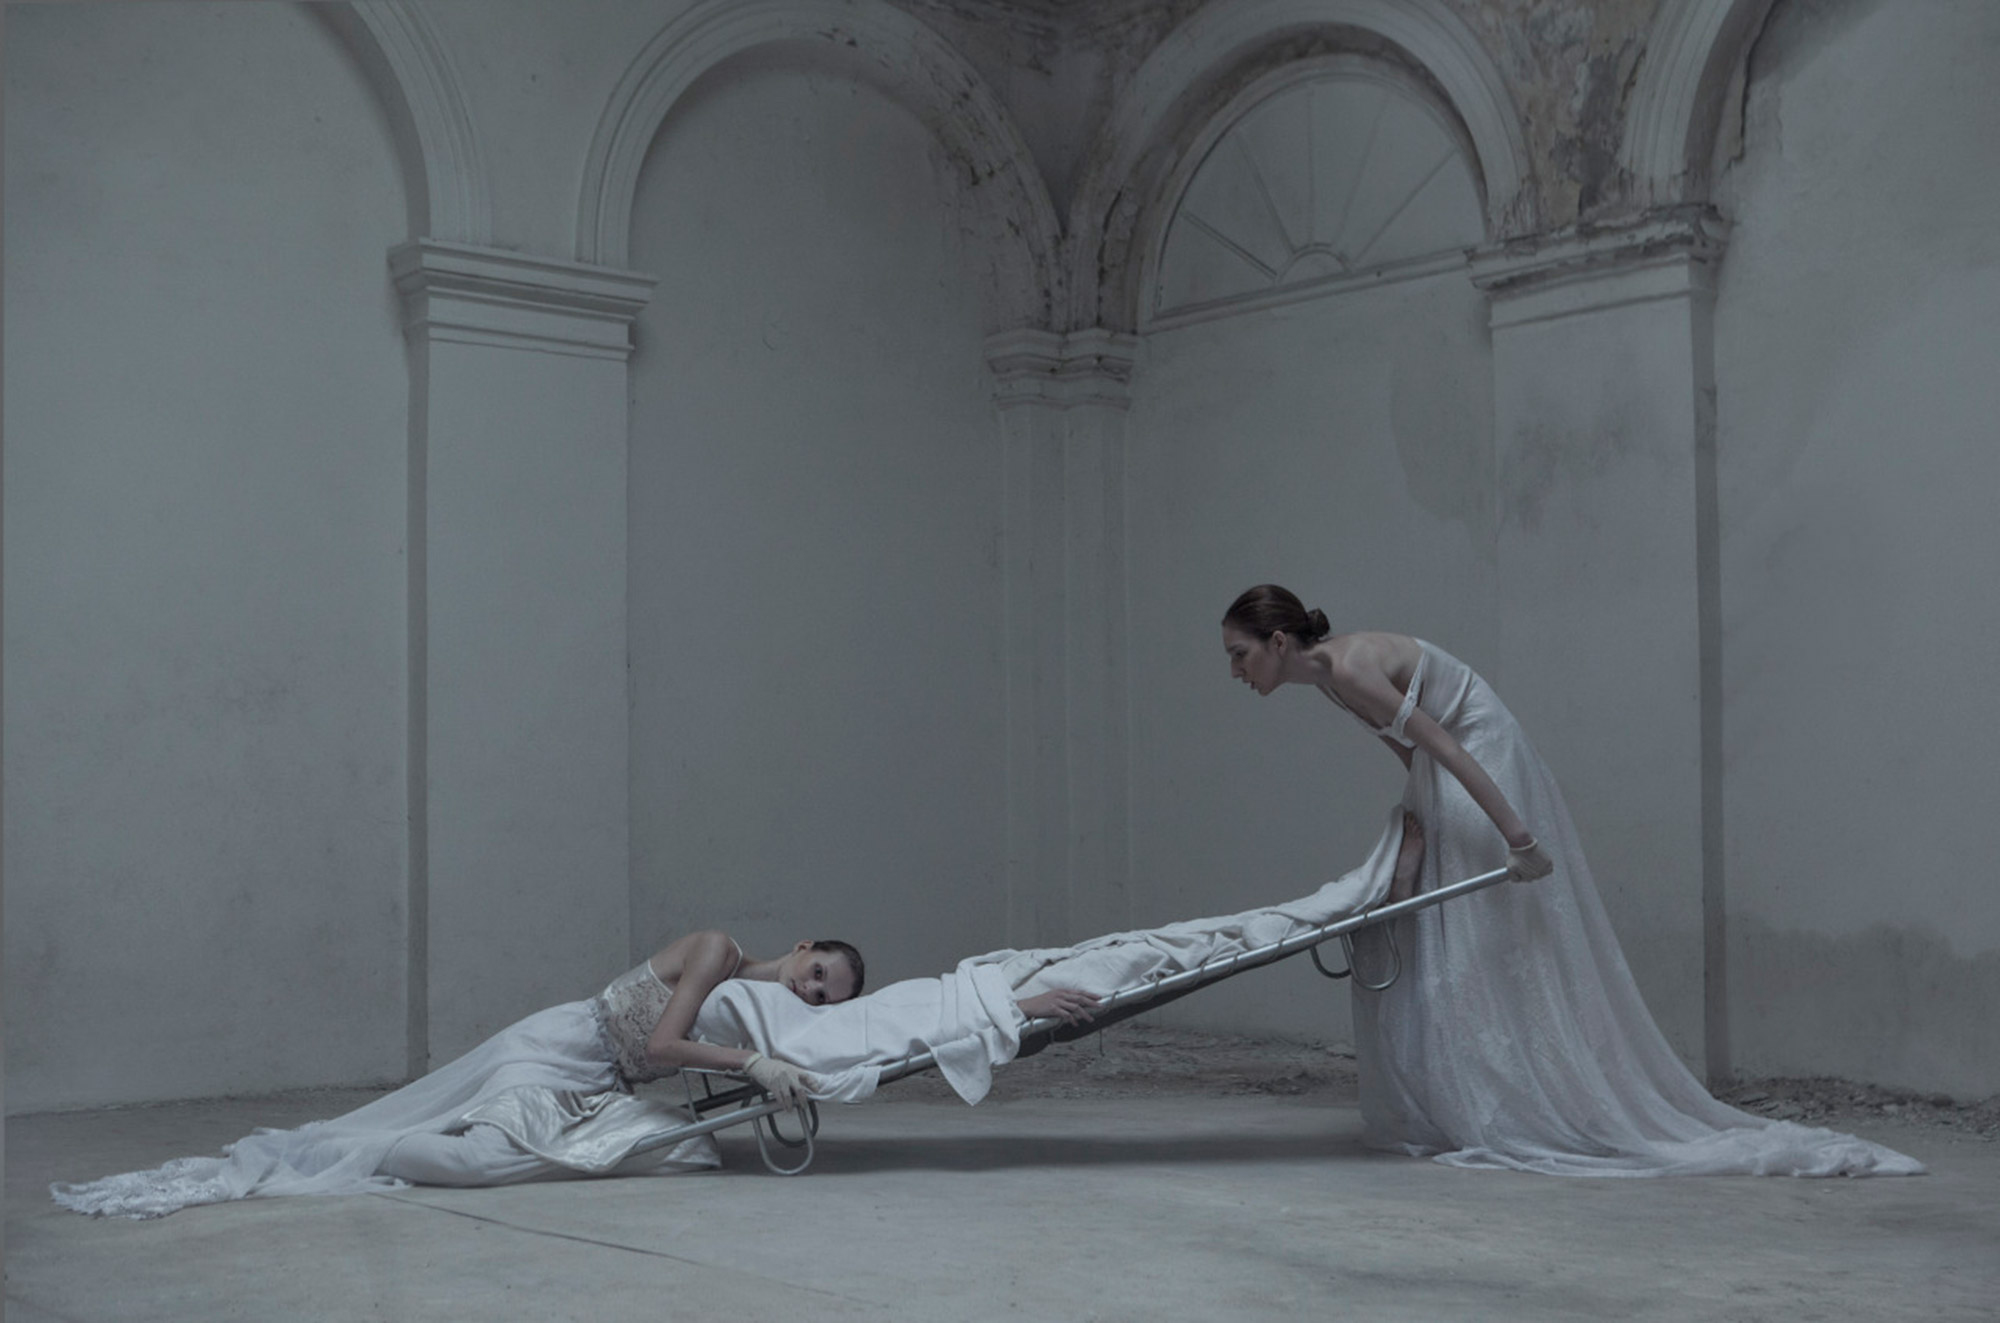 Evelyn Bencicova, Black and White Magic, strange hospital scene with body on stretcher